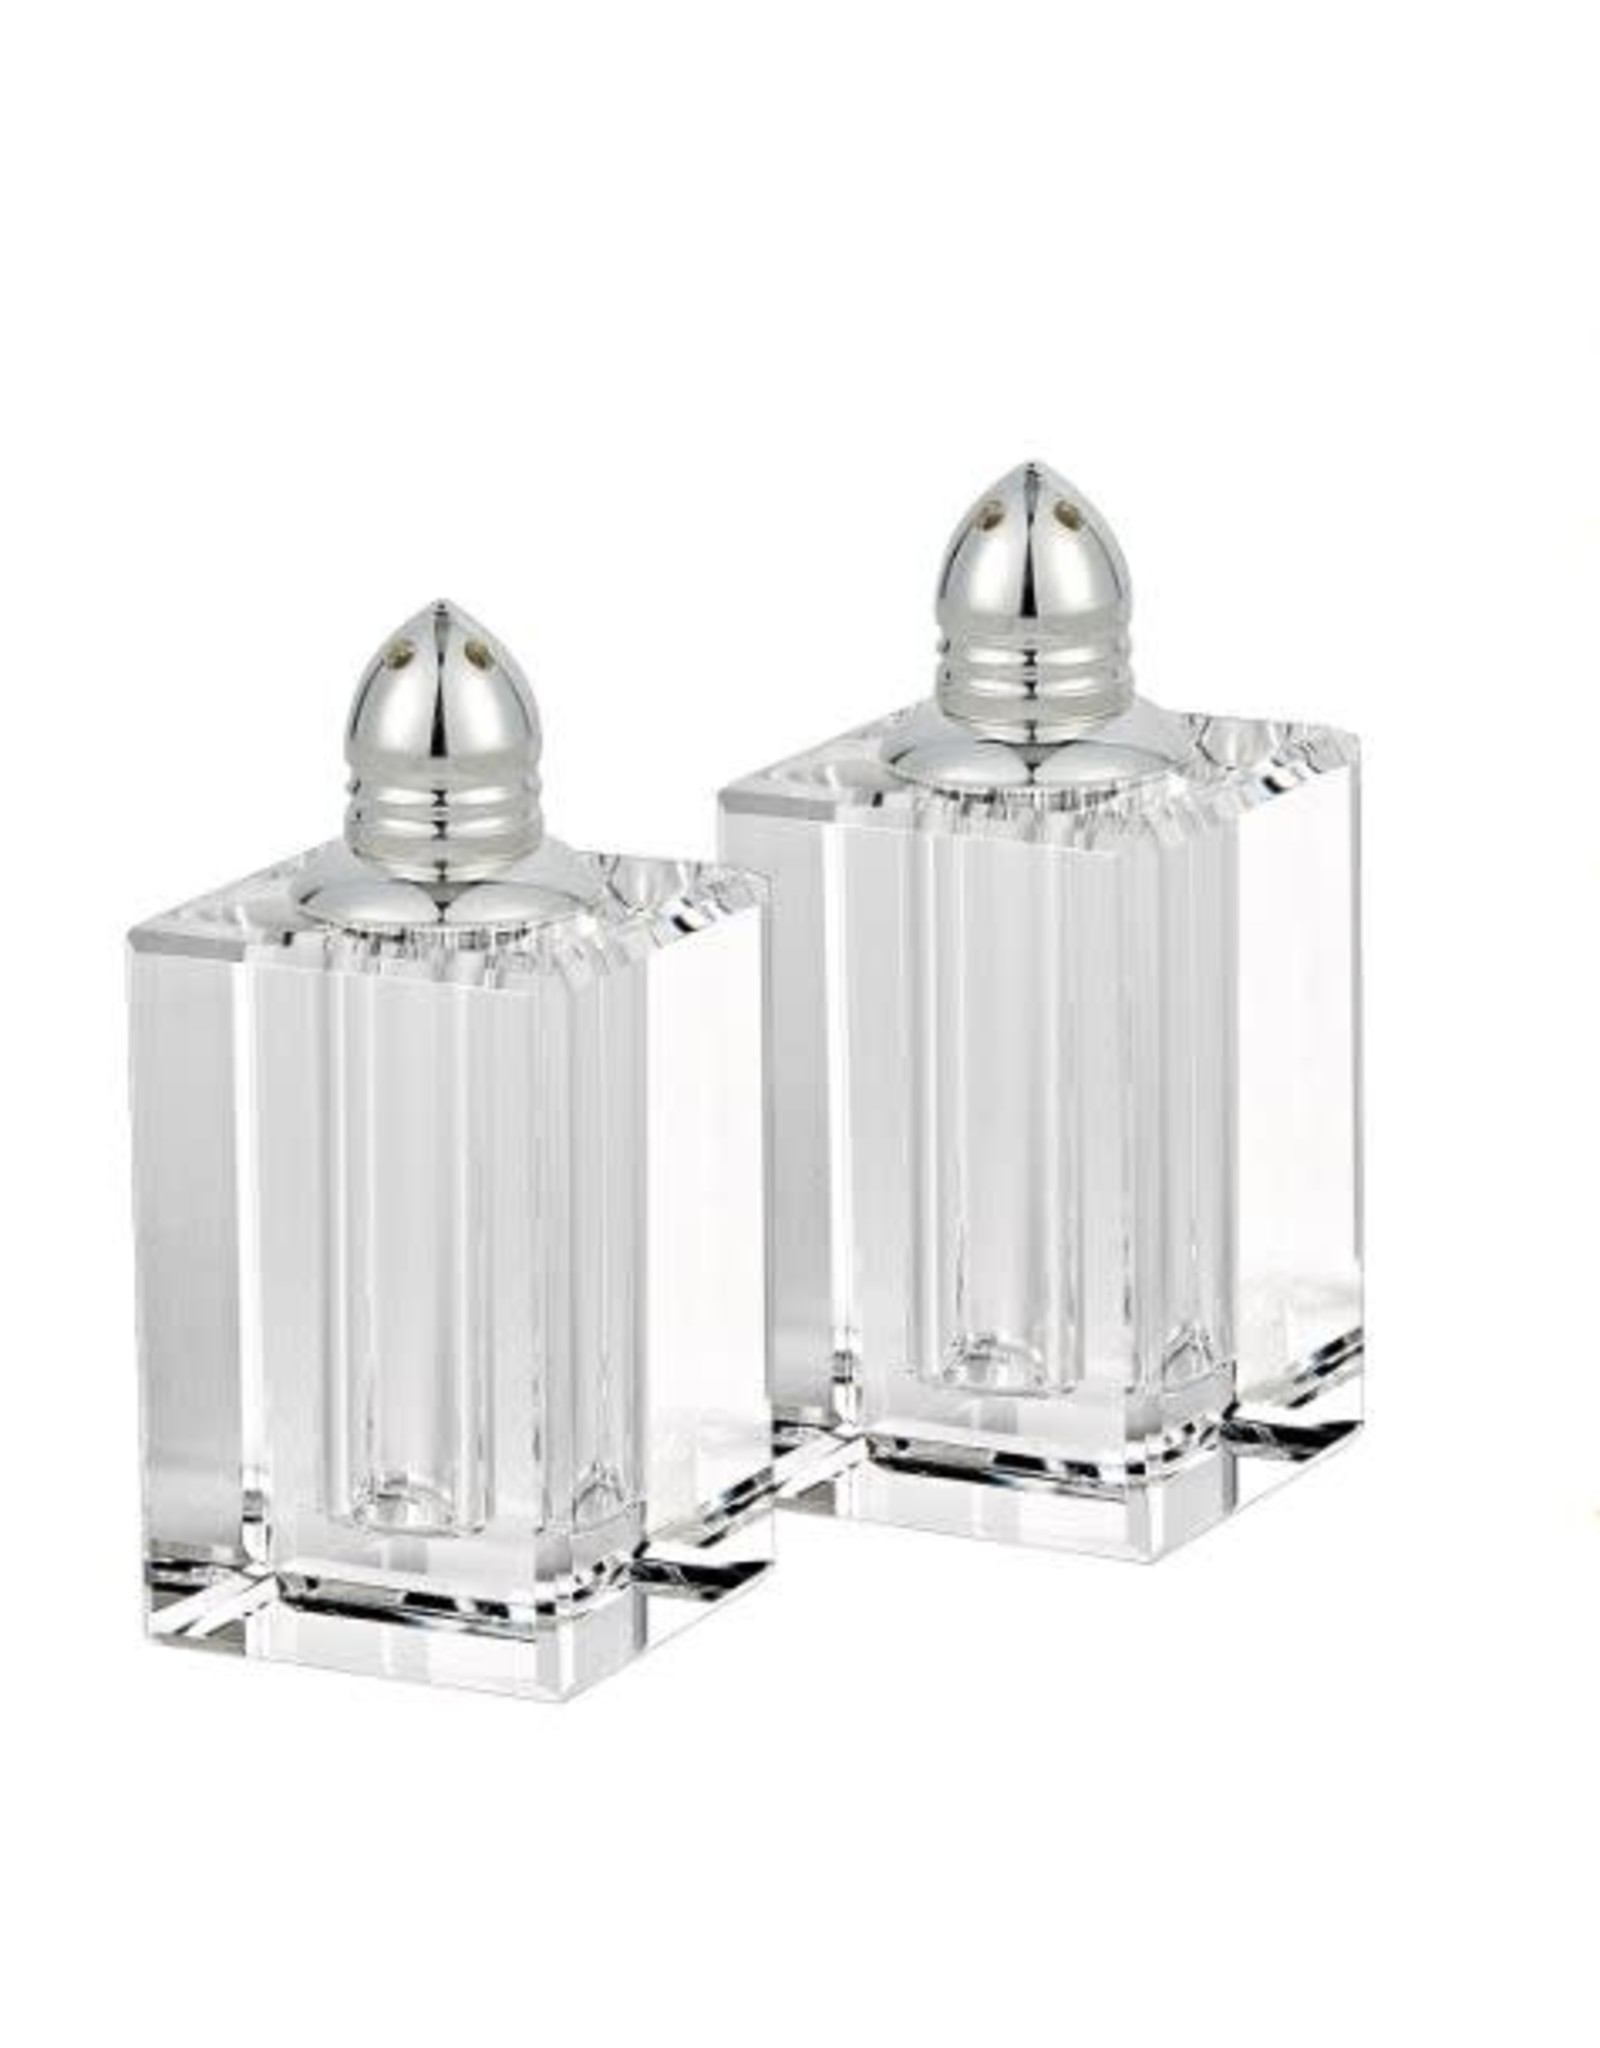 H143P Melania Silver Salt & Pepper Shaker Set